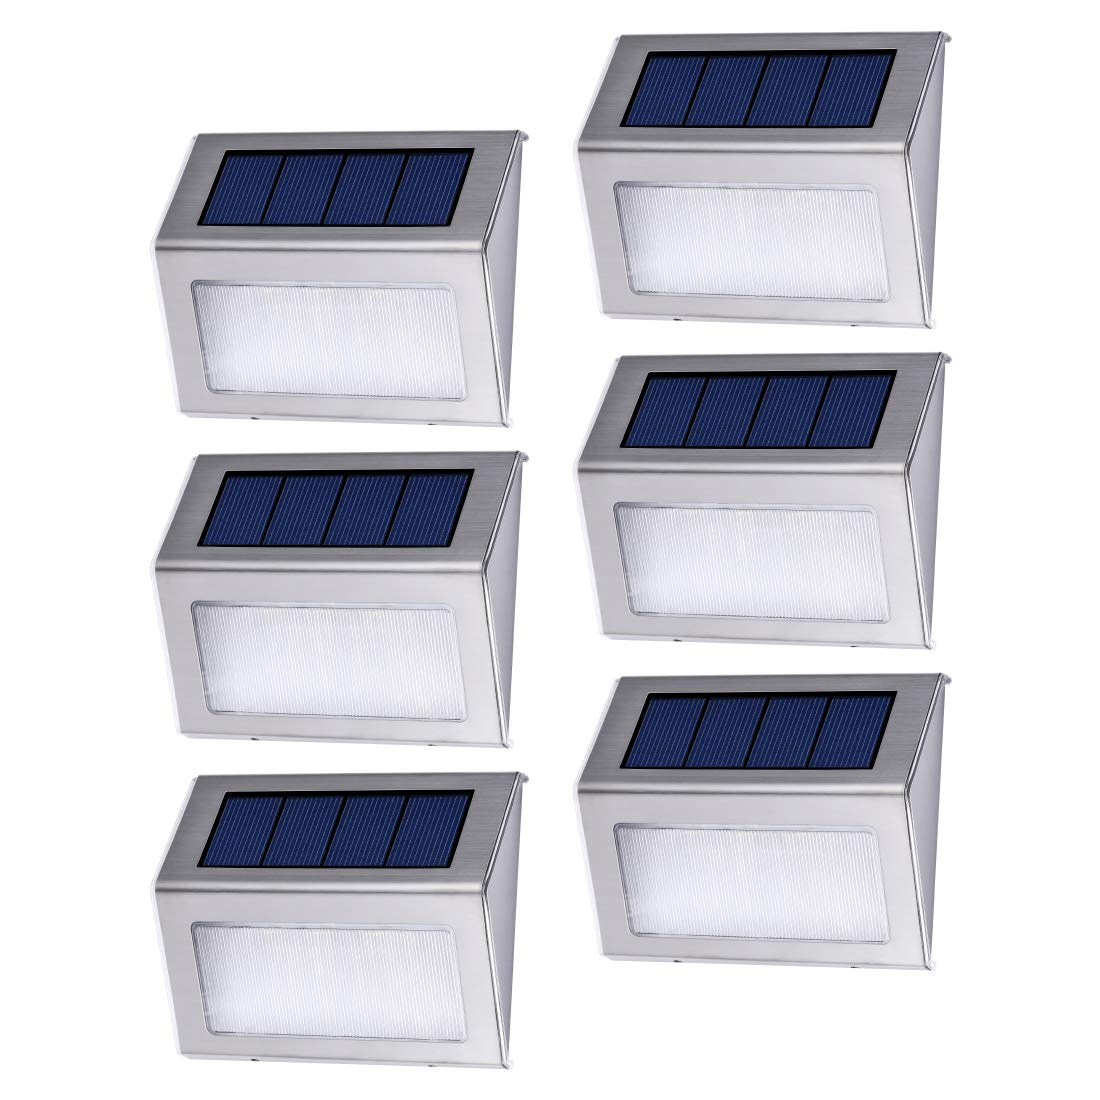 Dyxin 6 Pack Solar Deck Lights Bright 3 LED Stair Lights Auto On/Off Waterproof Stainless Steel Step Lights Outdoor Solar Lamp for Patio Walkway Garden Fences Pathway Wall Paths (White Light)